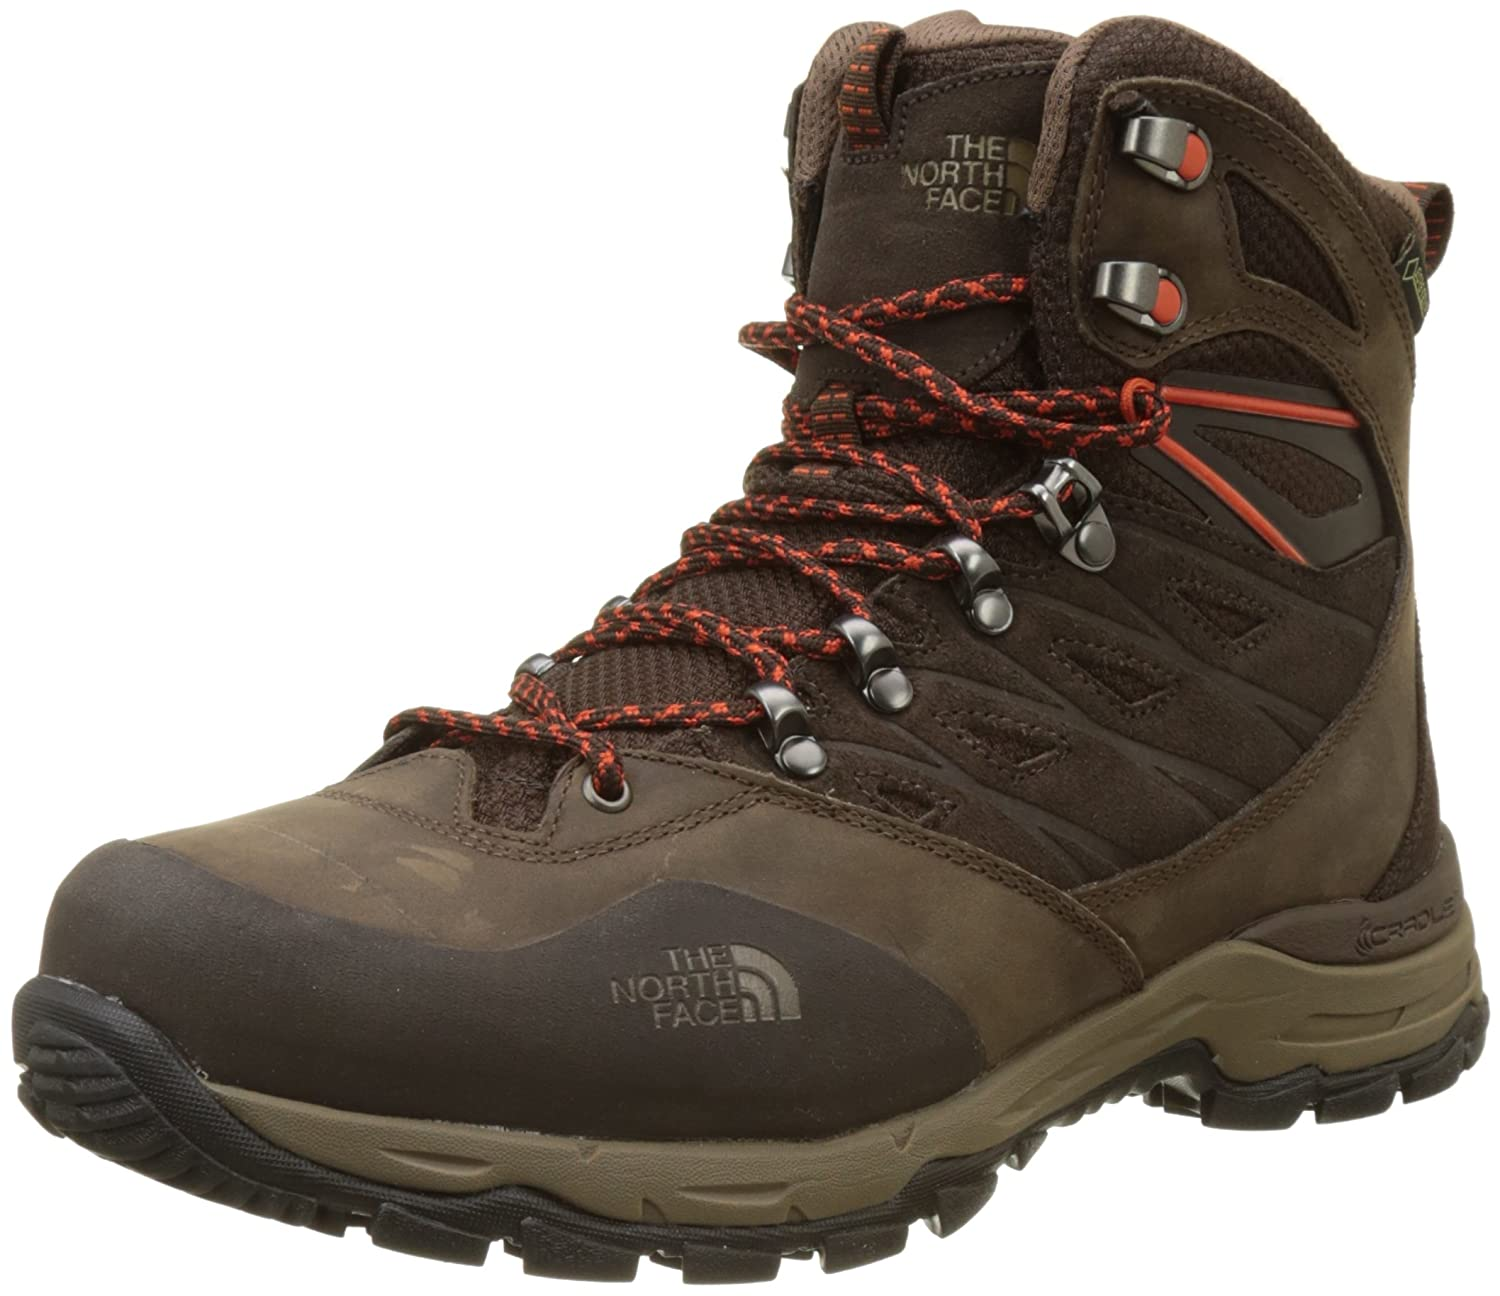 e5eb79f18dc THE NORTH FACE Men's Hedgehog Trek Gore-tex High Rise Hiking Boots,